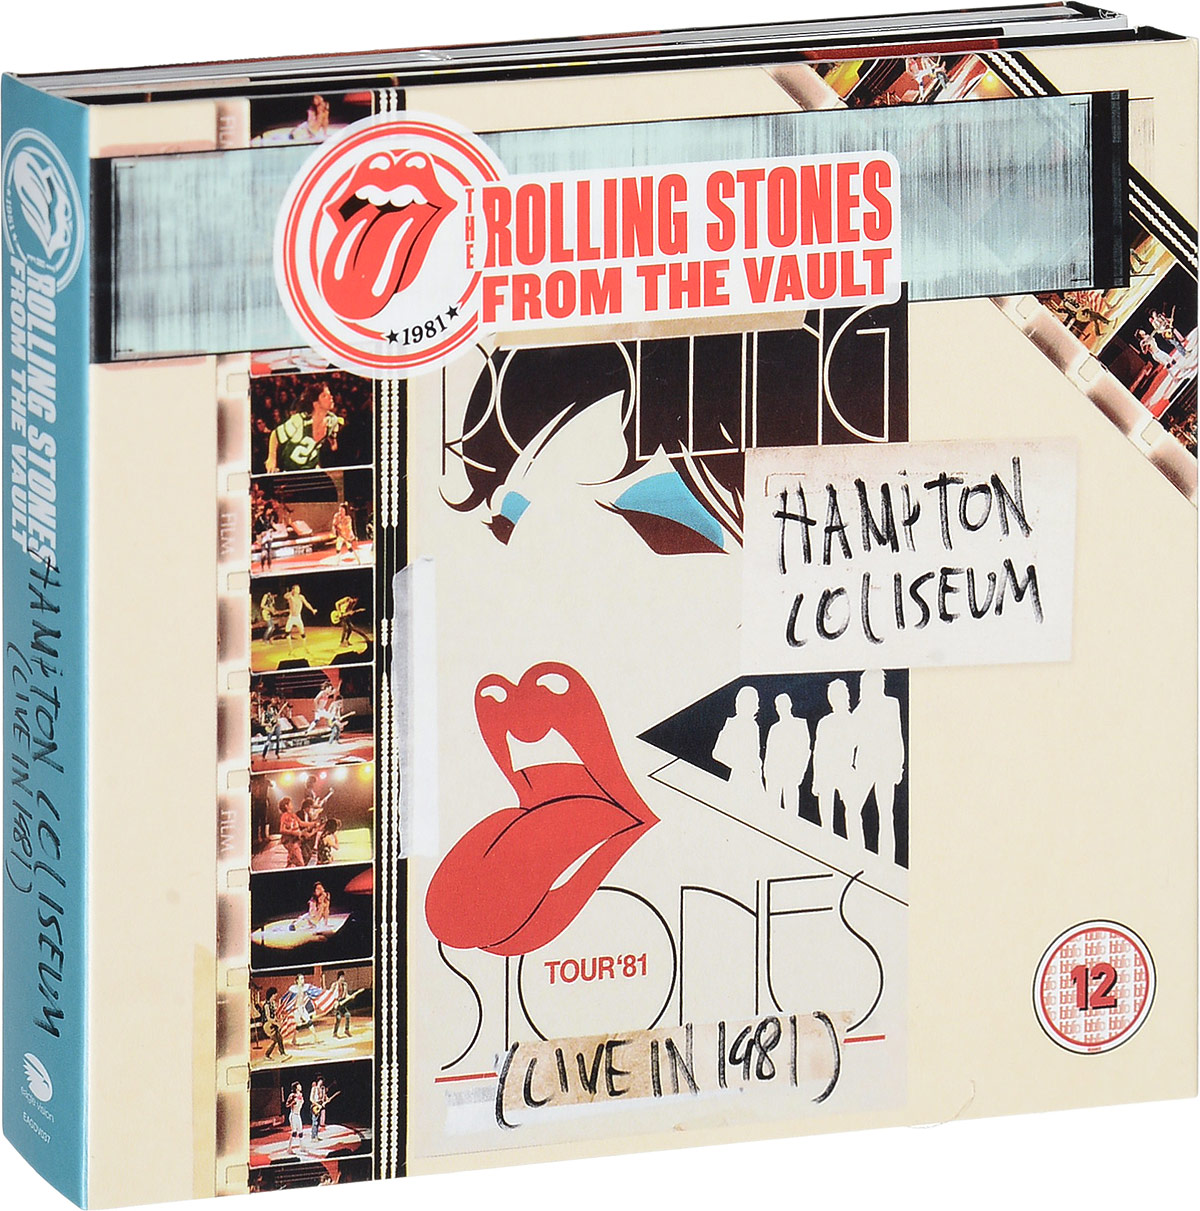 Rolling Stones: From The Vault: Hamiton Coliseum: Live In 1981 (DVD + 2 CD) van der graaf generator van der graaf generator live in concert at metropolis studios london 2 cd dvd